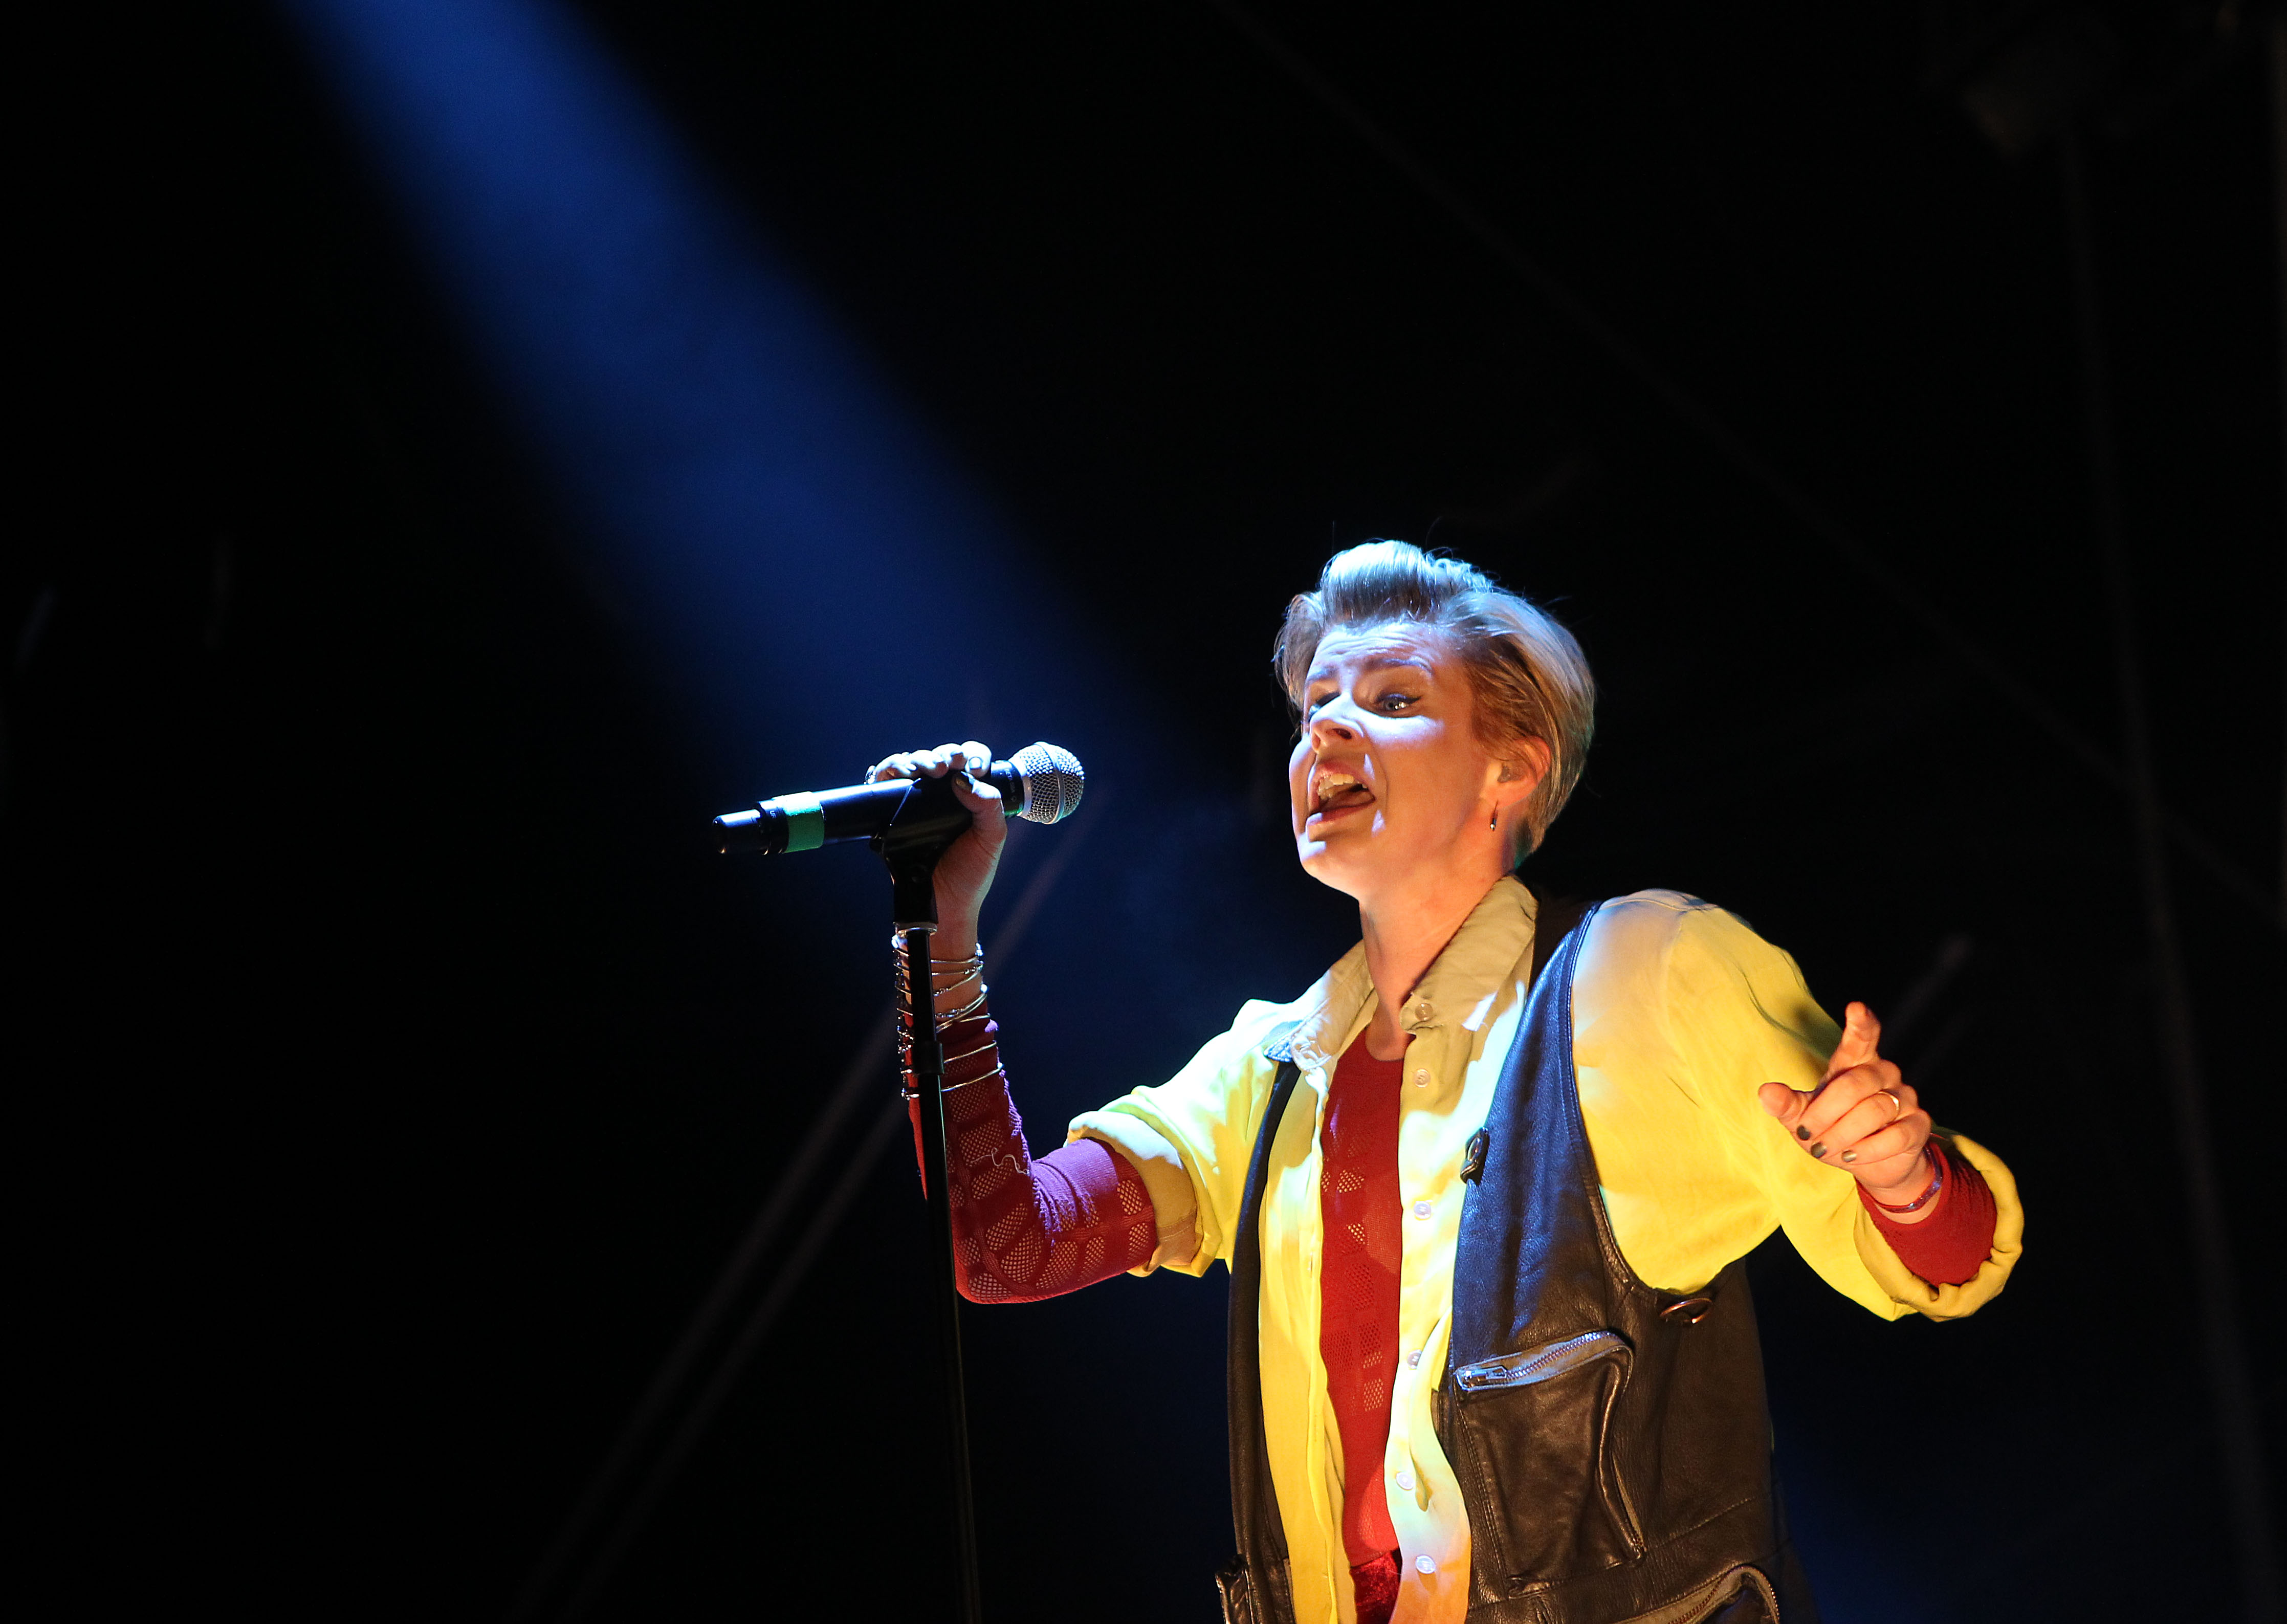 SYDNEY, AUSTRALIA - SEPTEMBER 30:  Robyn performs on stage during the Parklife 2012 music festival at Centennial Park on Sept